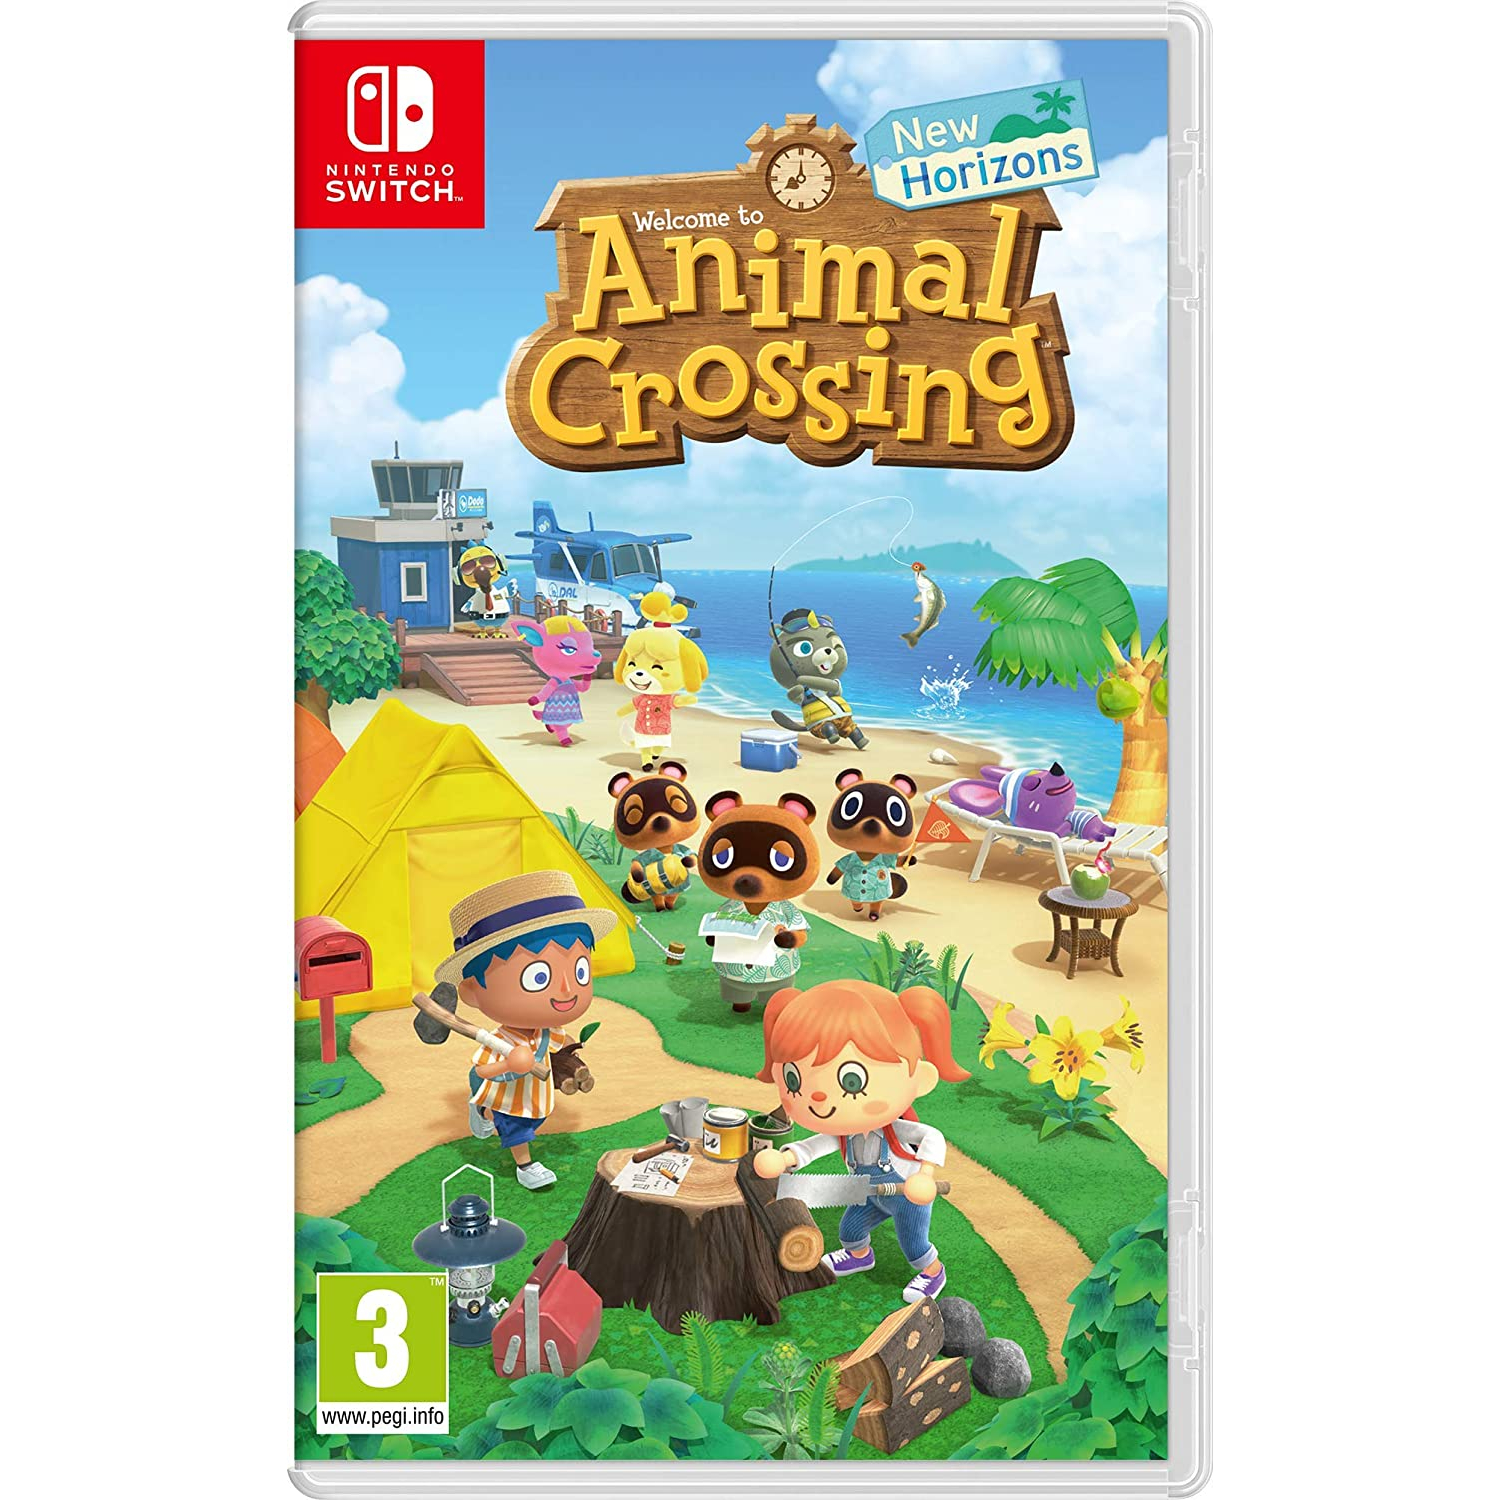 Nintendo Switch Juego Animal Crossing: New Horizons [Solo Ingles]